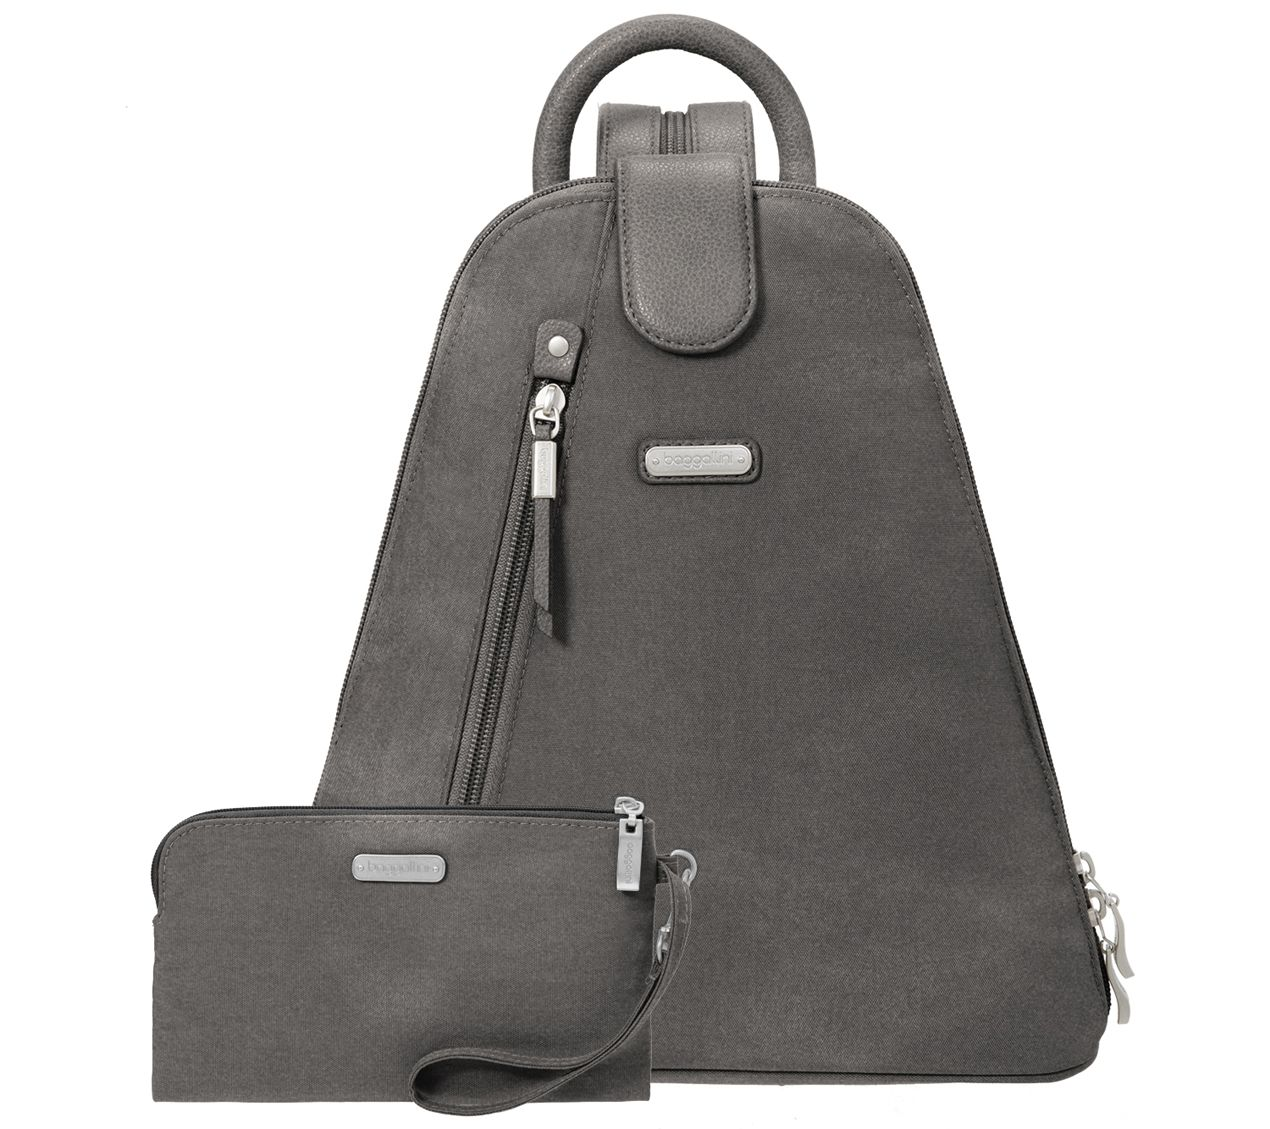 8d66a54e3417 baggallini Metro Backpack with RFID Phone Wristlet - Page 1 — QVC.com